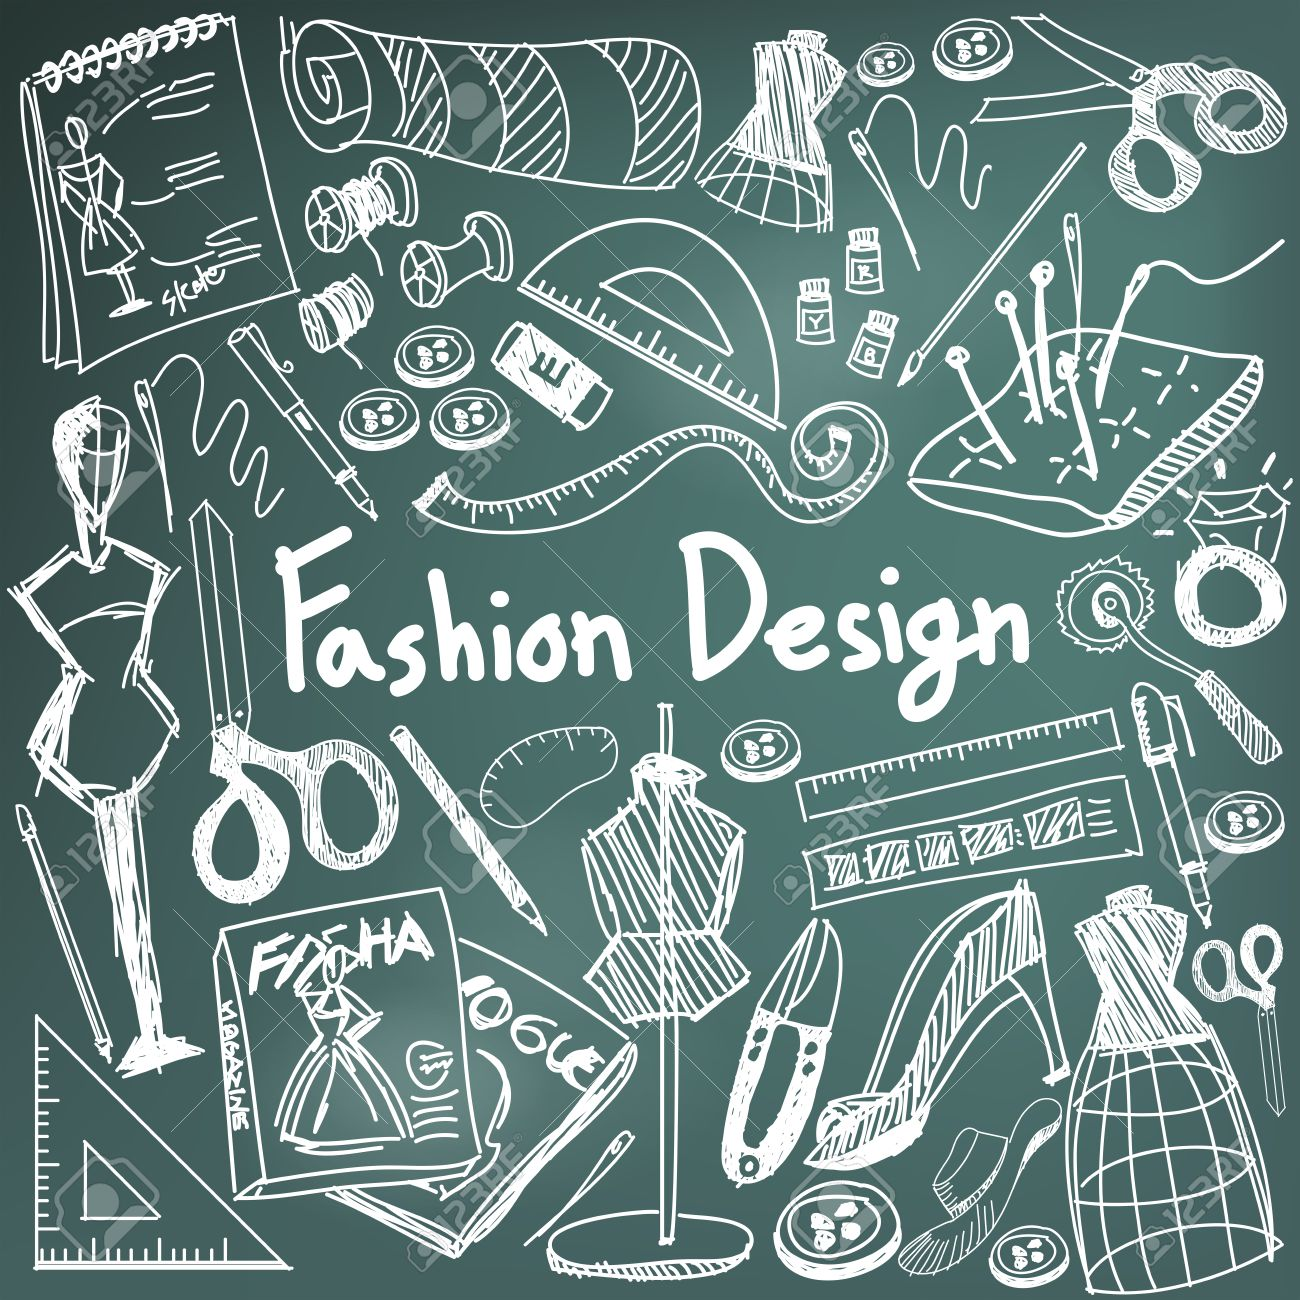 Fashion Design Education Chalk Handwriting Doodle Icon Tool Sign Royalty Free Cliparts Vectors And Stock Illustration Image 52658939